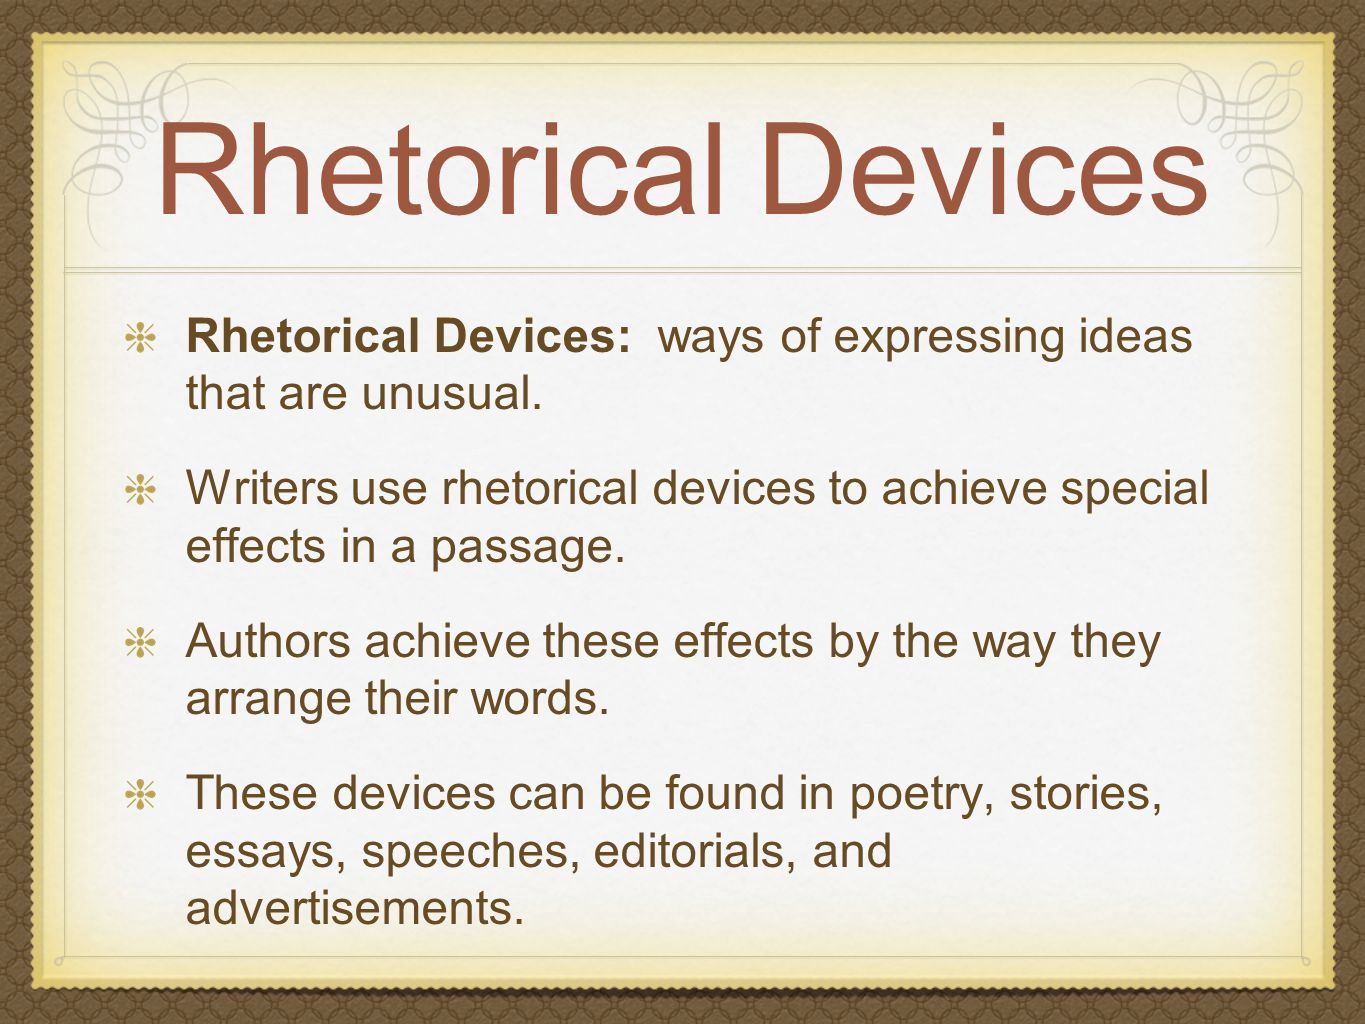 which rhetorical device can you use in this essay There are many rhetorical devices a writer can use when crafting an essay a few examples include rhetorical questions, understatement, hyperbole, and metaphor.